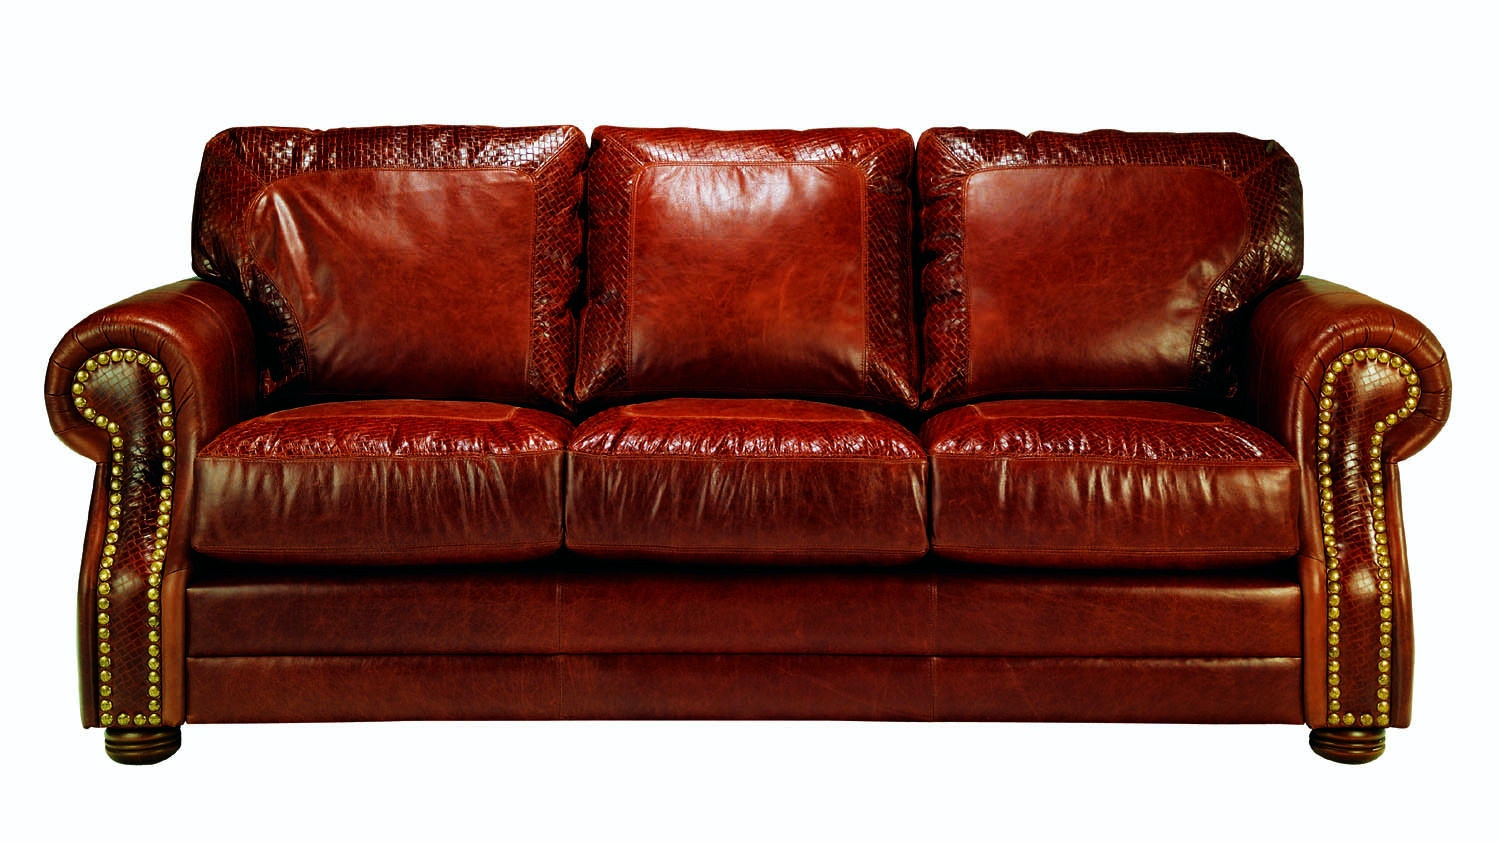 Legacy Leather Furniture Woodley S Colorado Springs